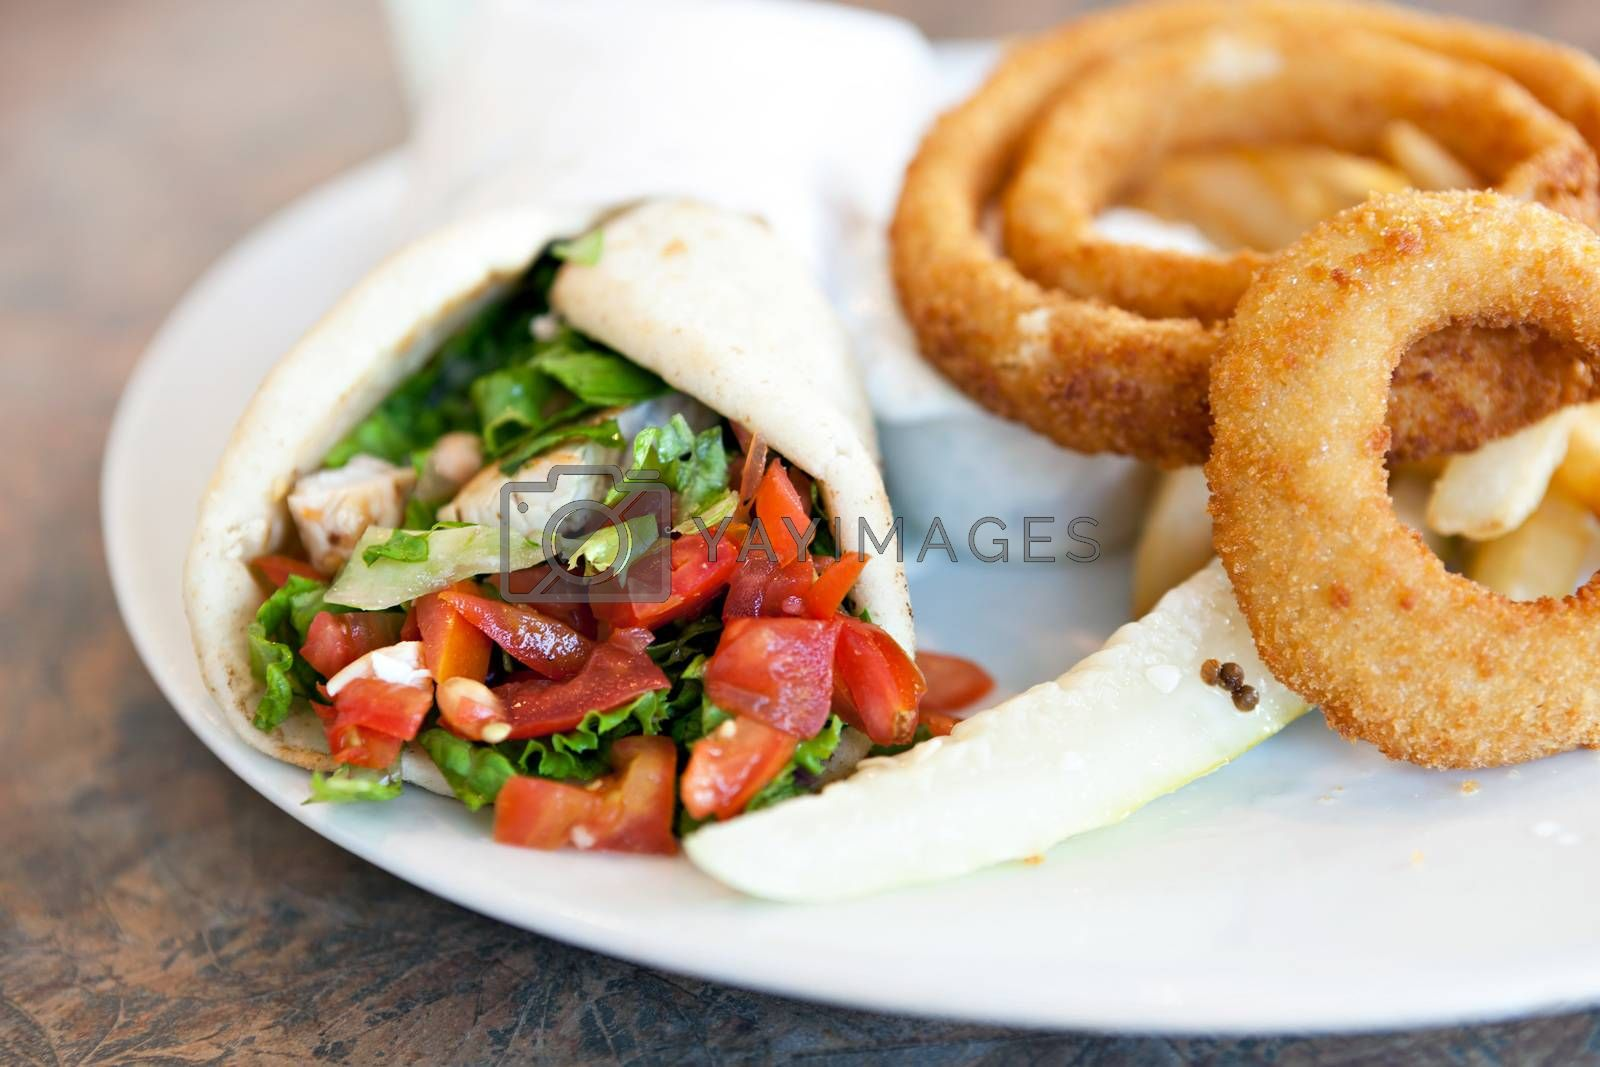 Chicken pita wrap sandwich with onion rings and a deli pickle slice. Shallow depth of field.